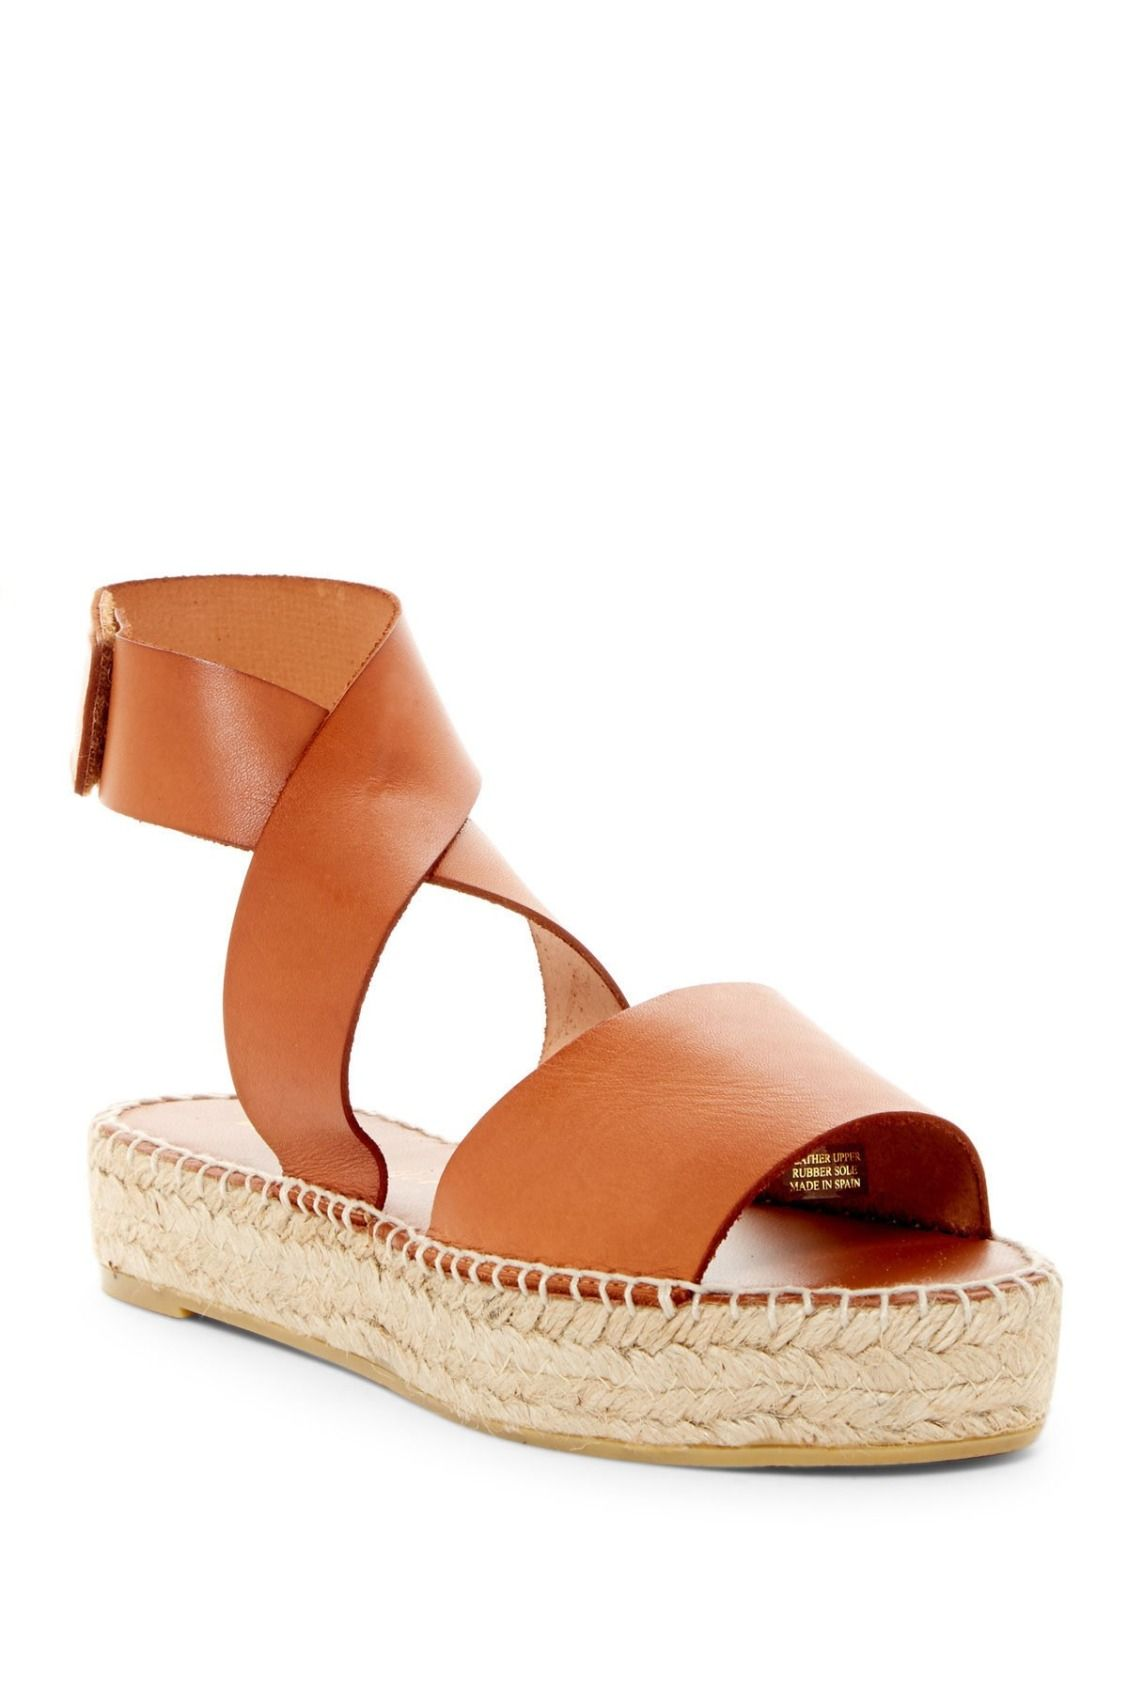 8c9f5bc033a Need these tan Bettye Muller Seven Espadrille Platform Sandals for ...